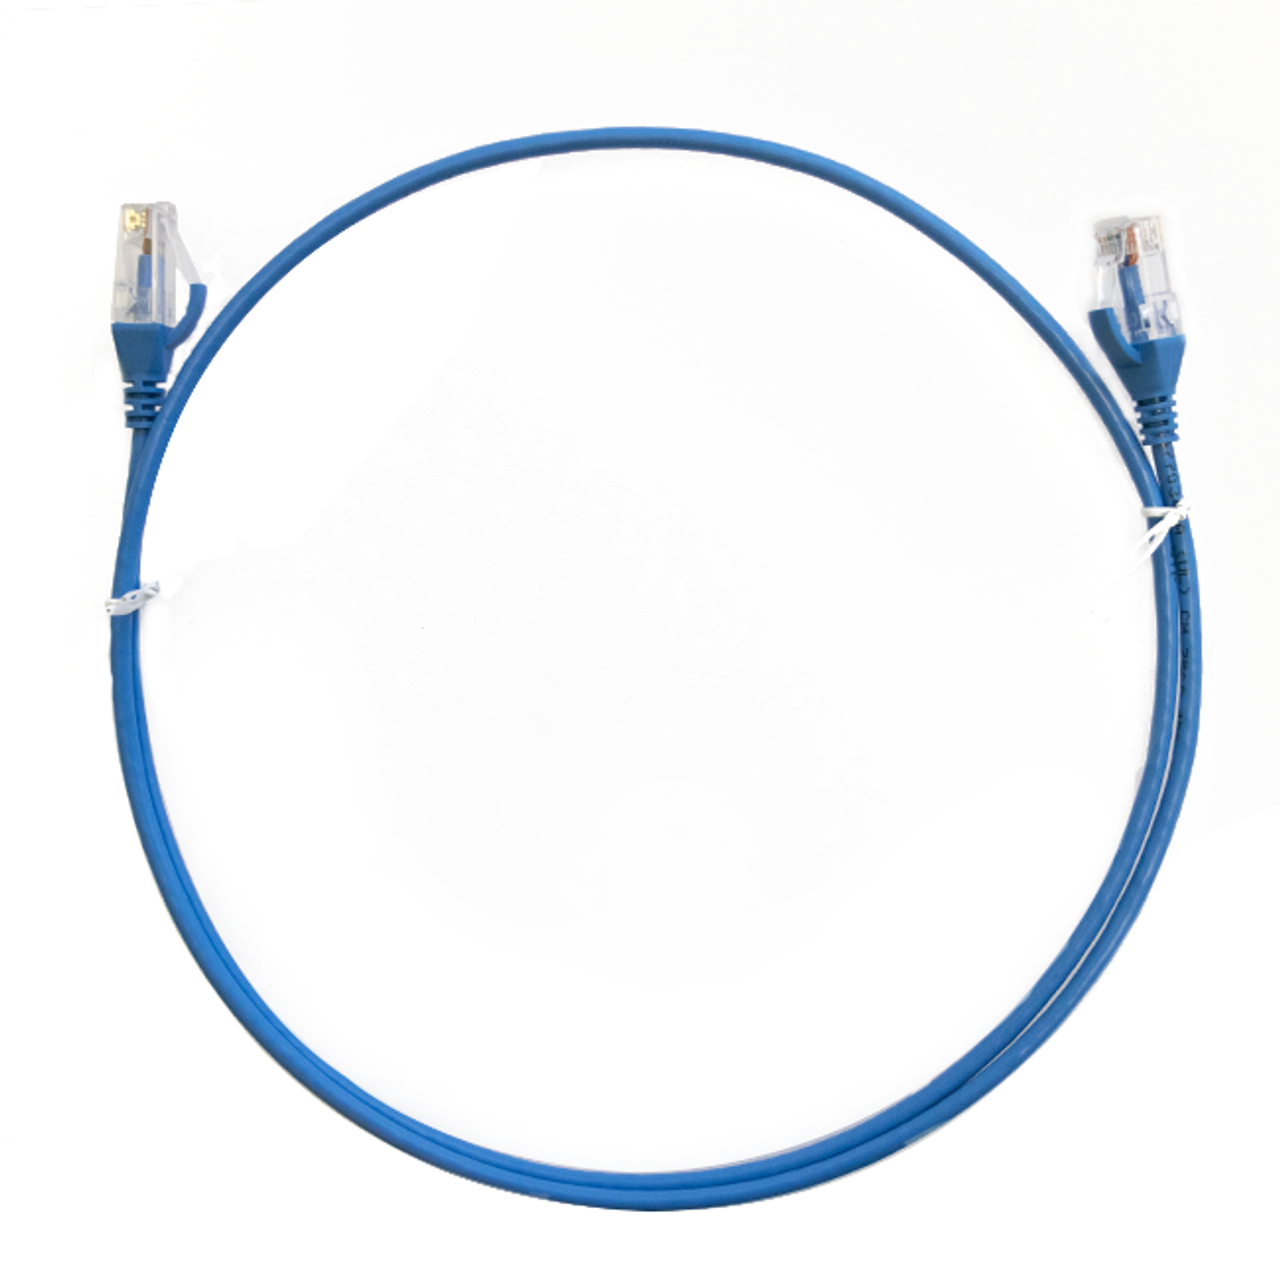 Image for 2.5m Cat 6 RJ45 RJ45 Ultra Thin LSZH Network Cables  : Blue CX Computer Superstore